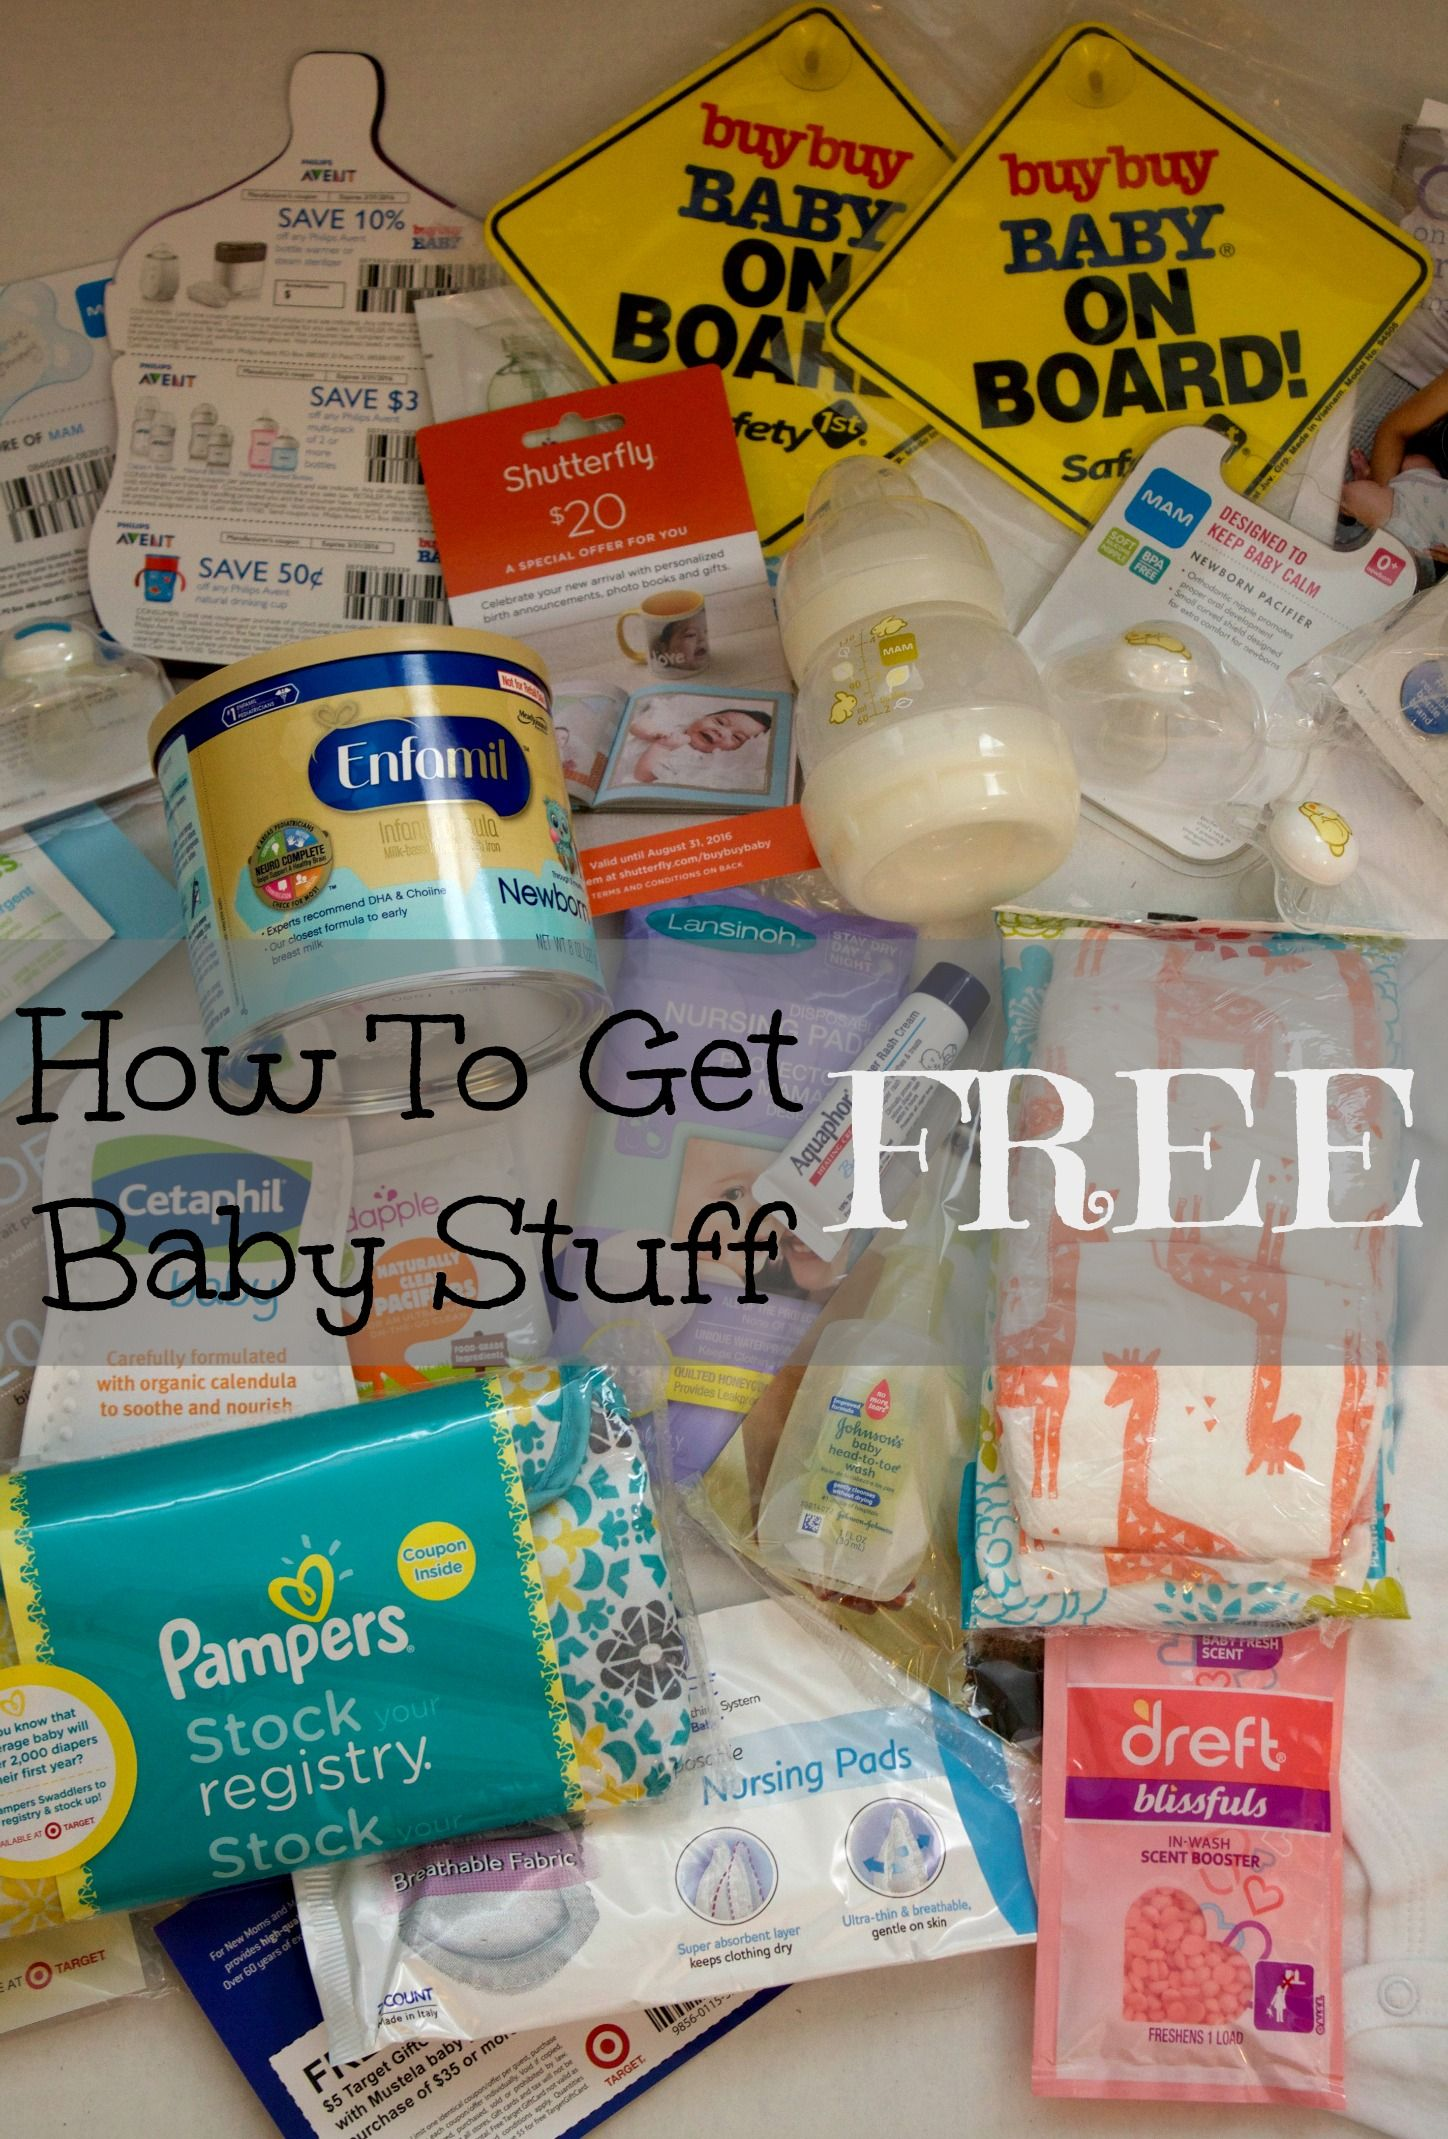 How To Get Free Baby Stuff Babies stuff, Mom and Products